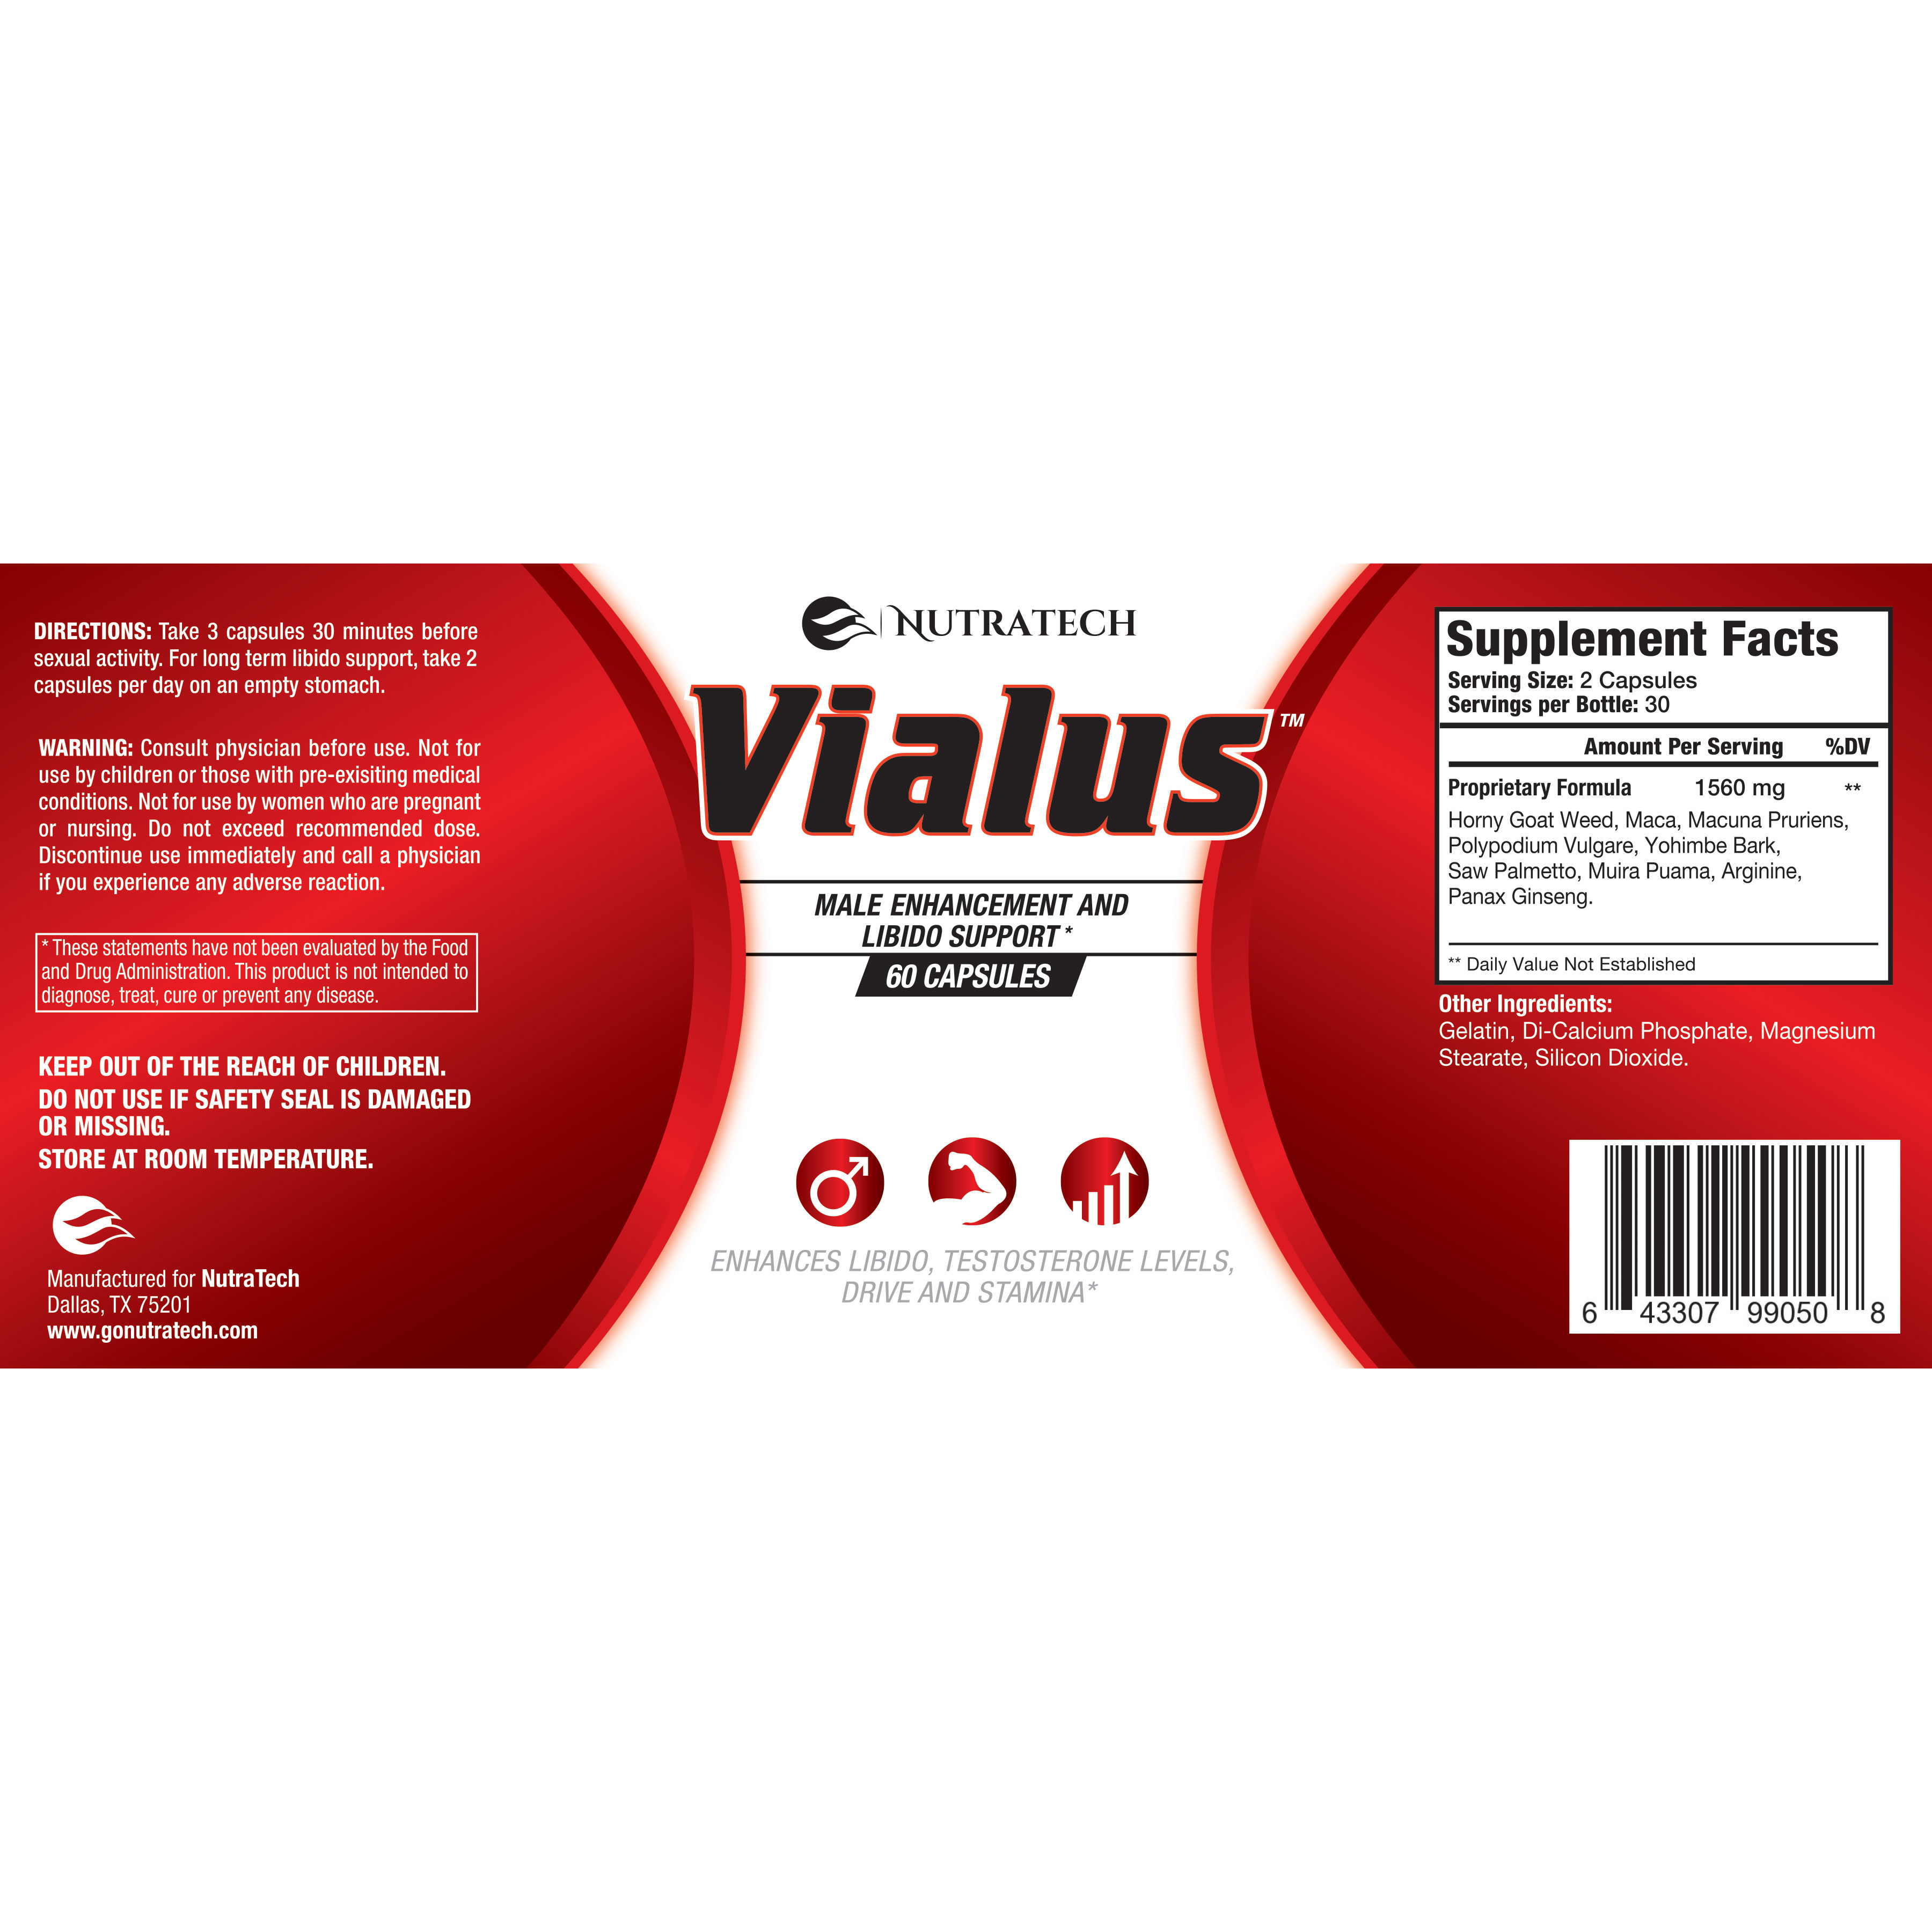 What is Vialus?